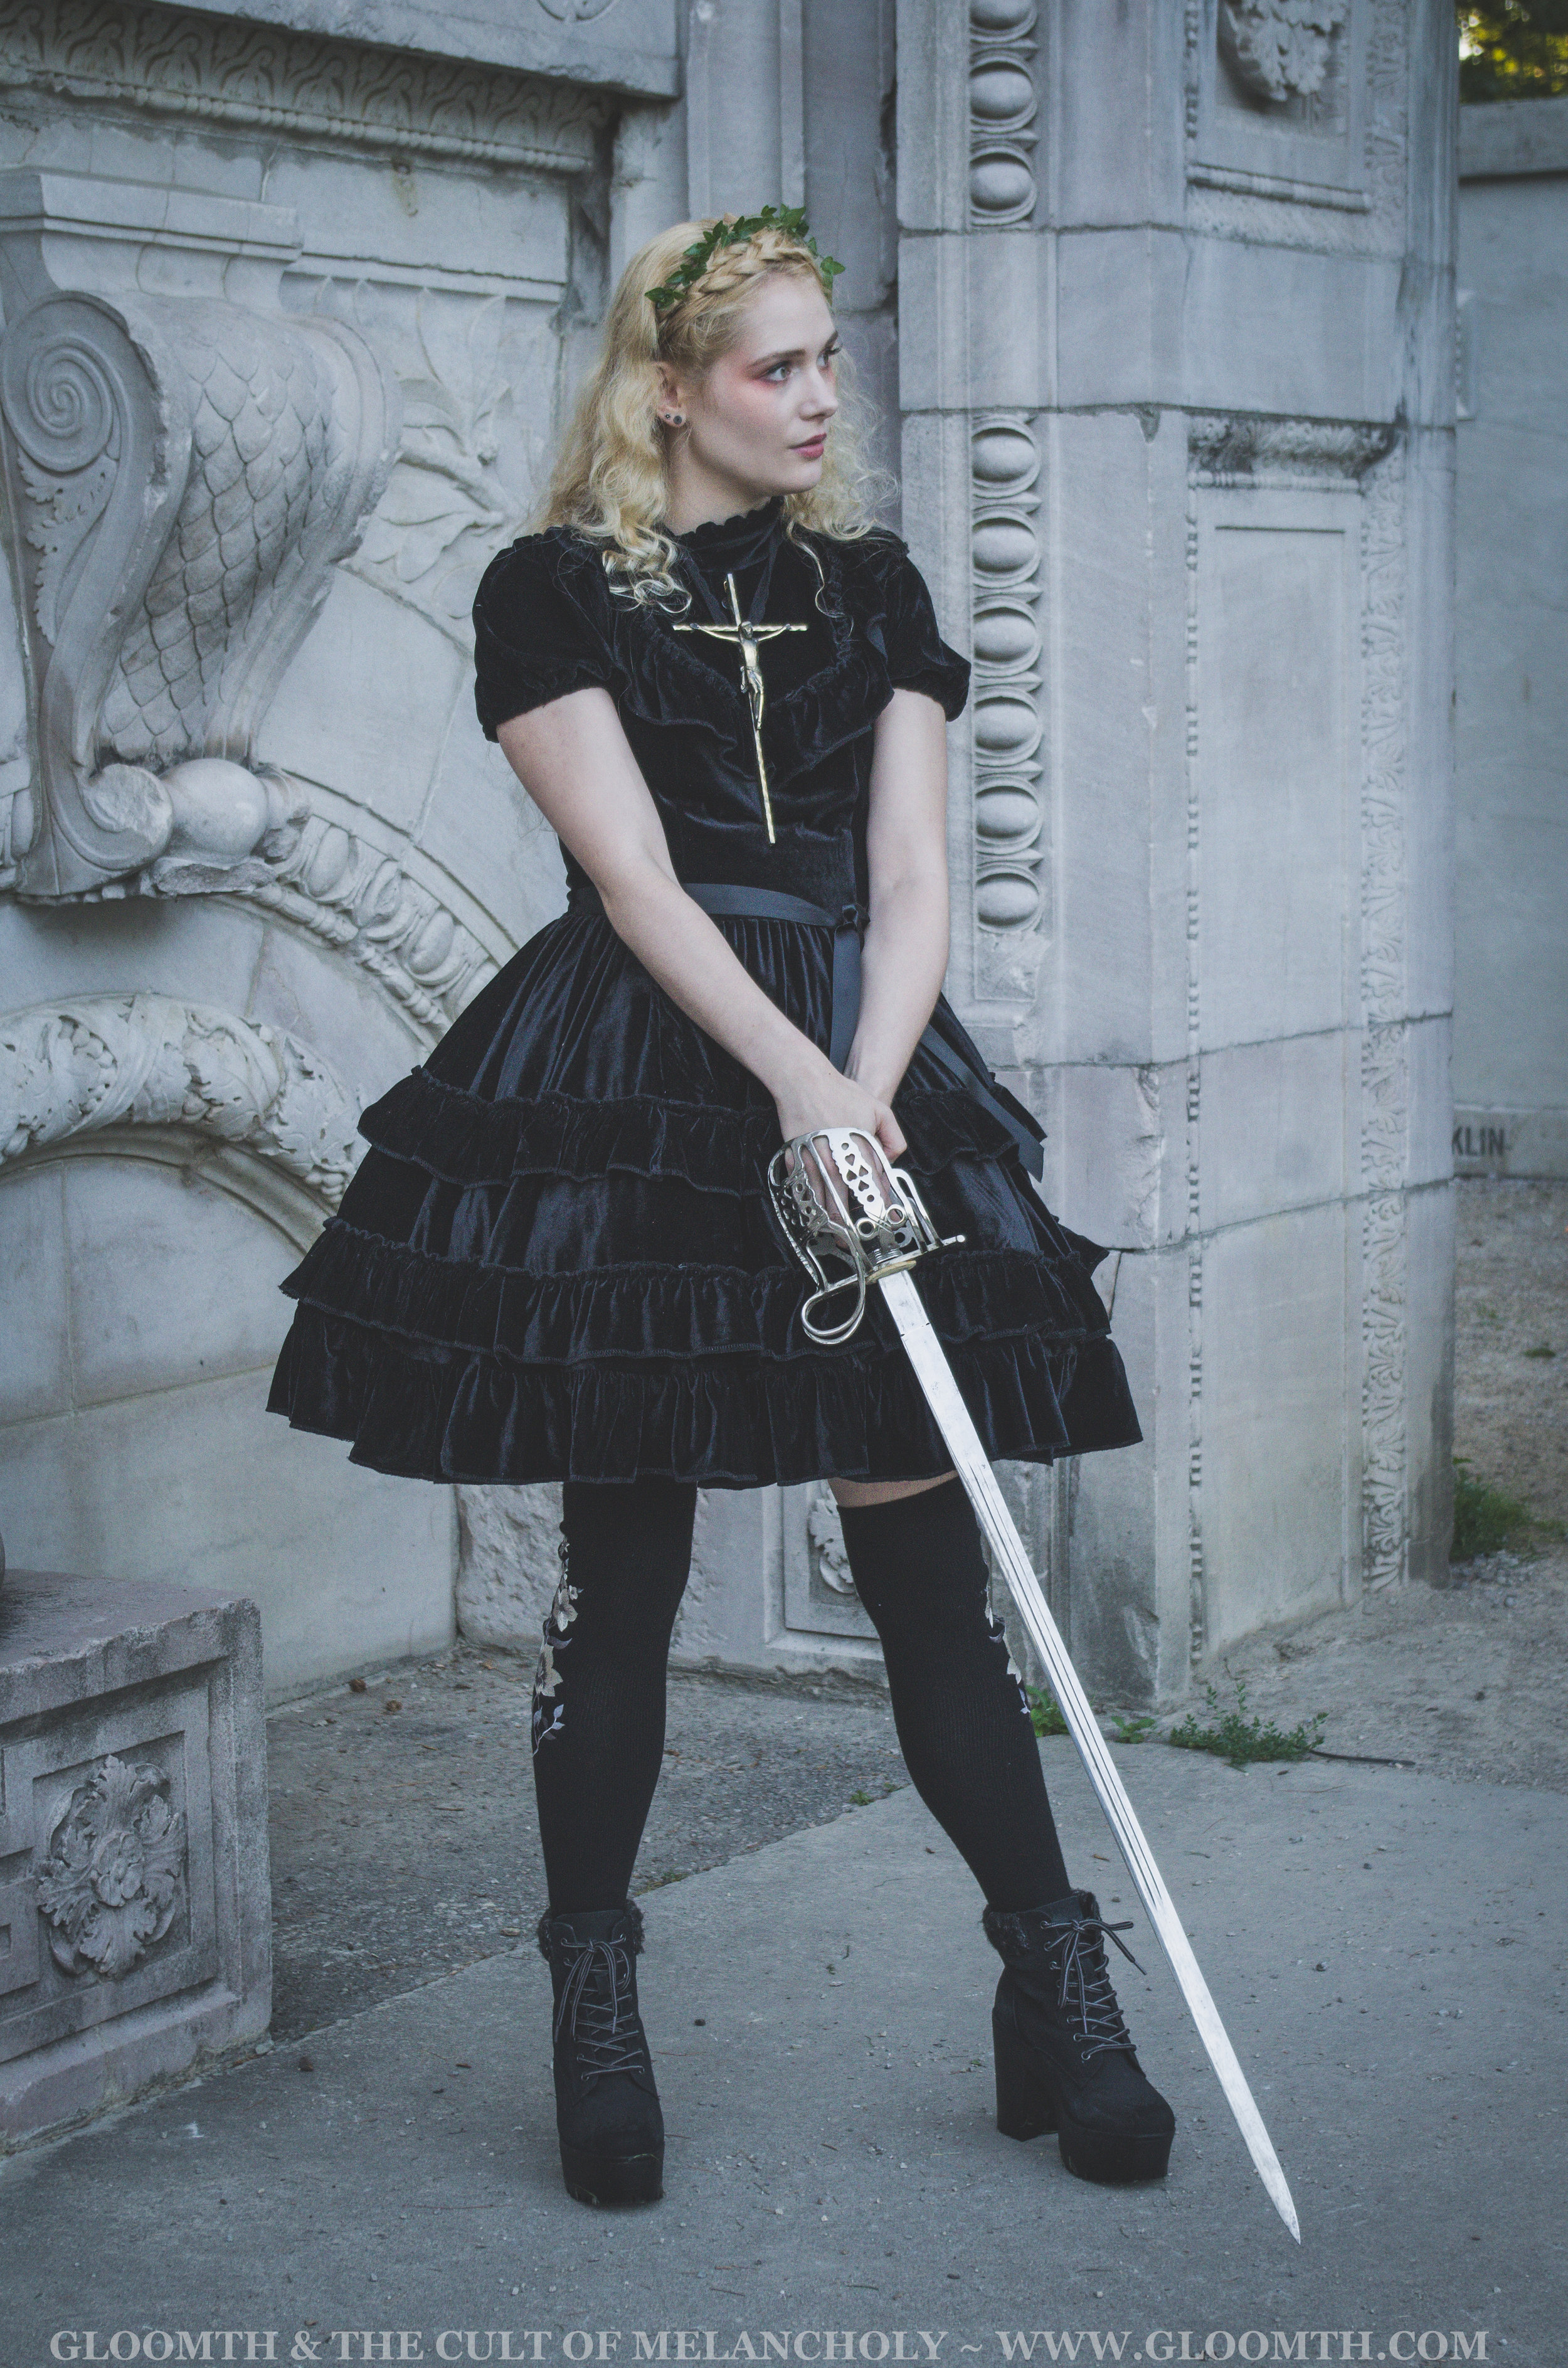 joan of arc with velvet dress and sword editorial